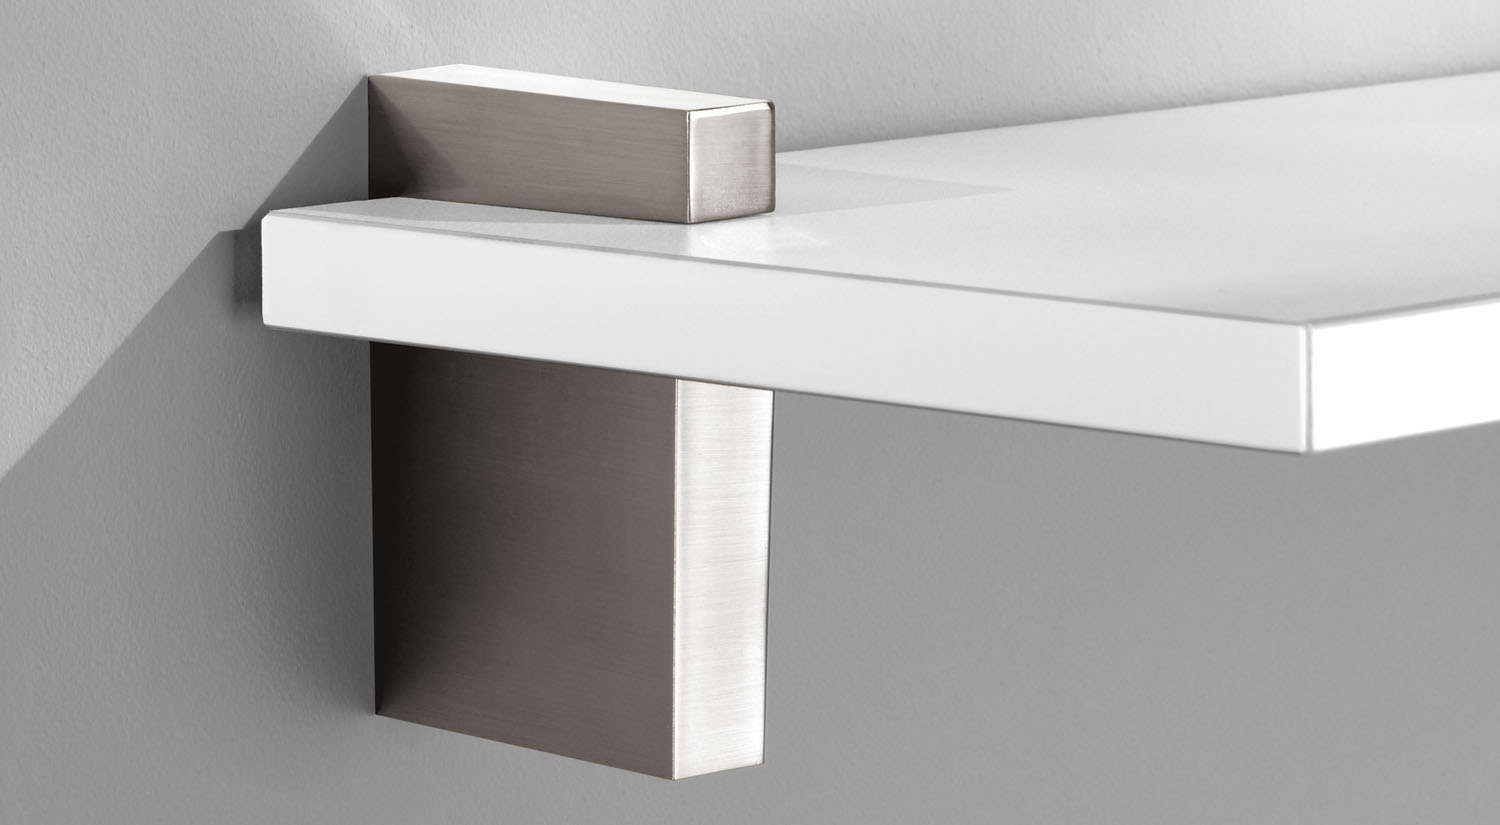 Shelf Brackets + Supports - Huge Range | regalraum com